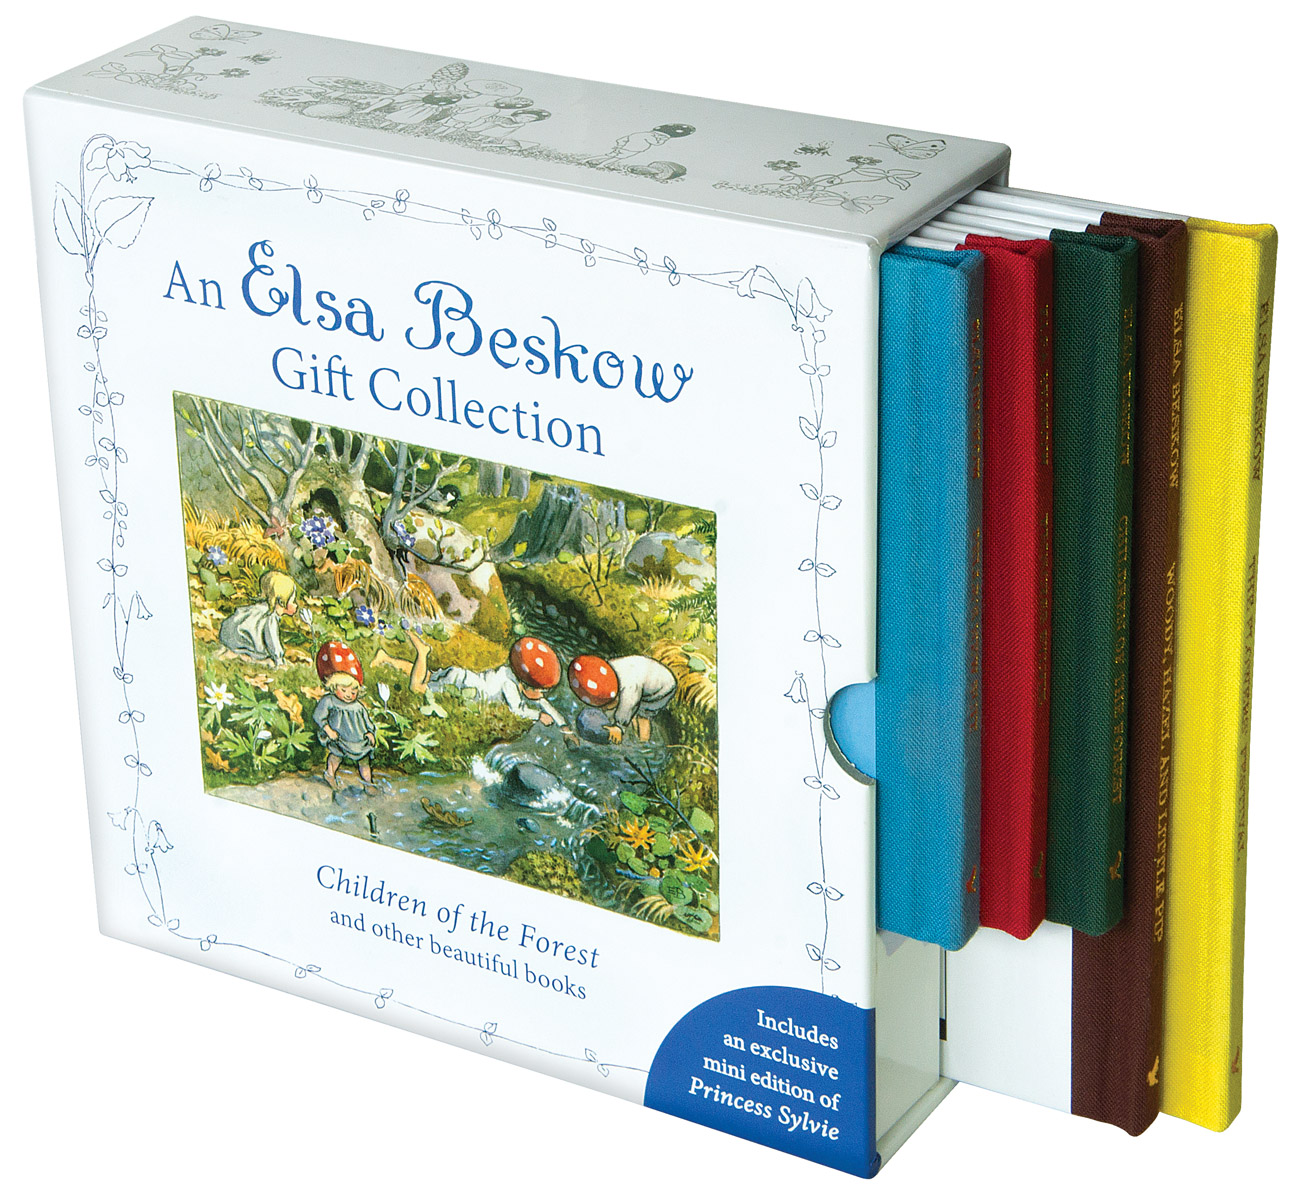 Elsa Beskow Gift Collection - Floris Books